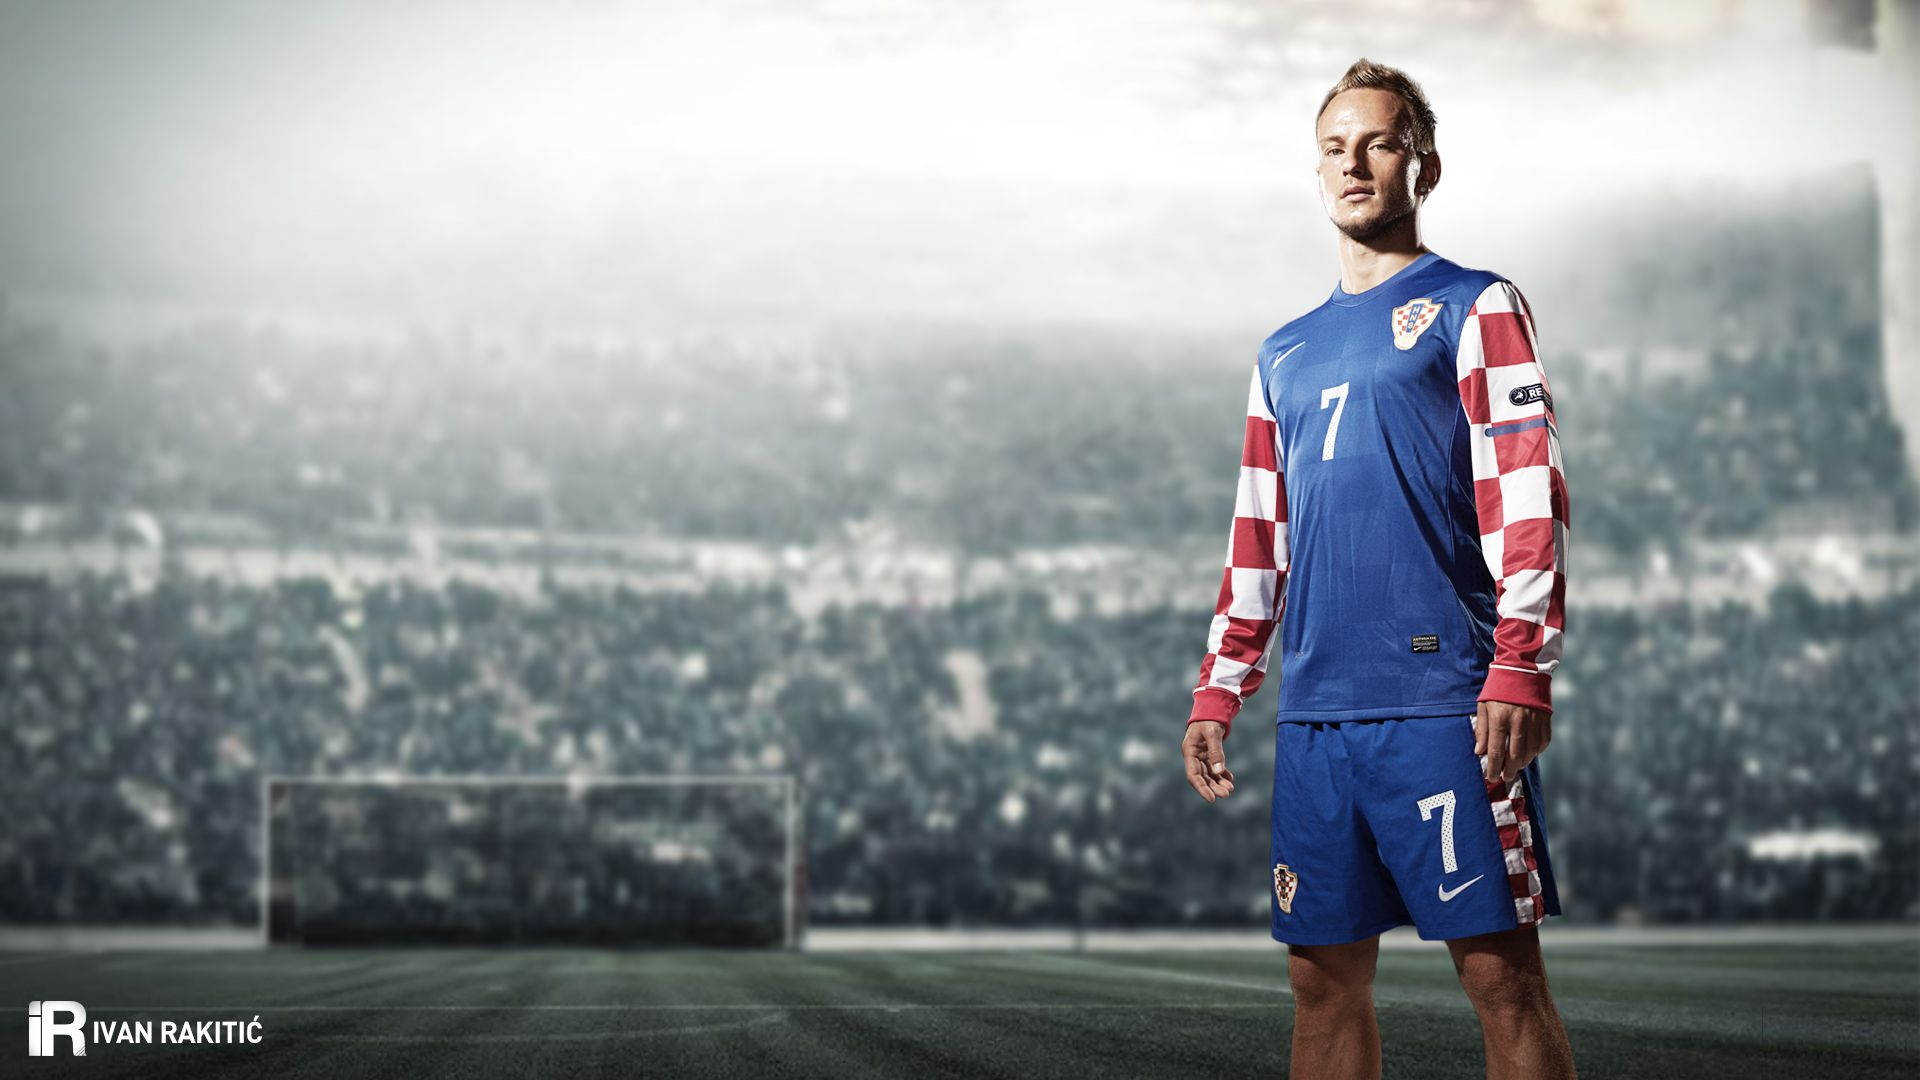 1920x1080 Ivan Rakitic Football Wallpaper